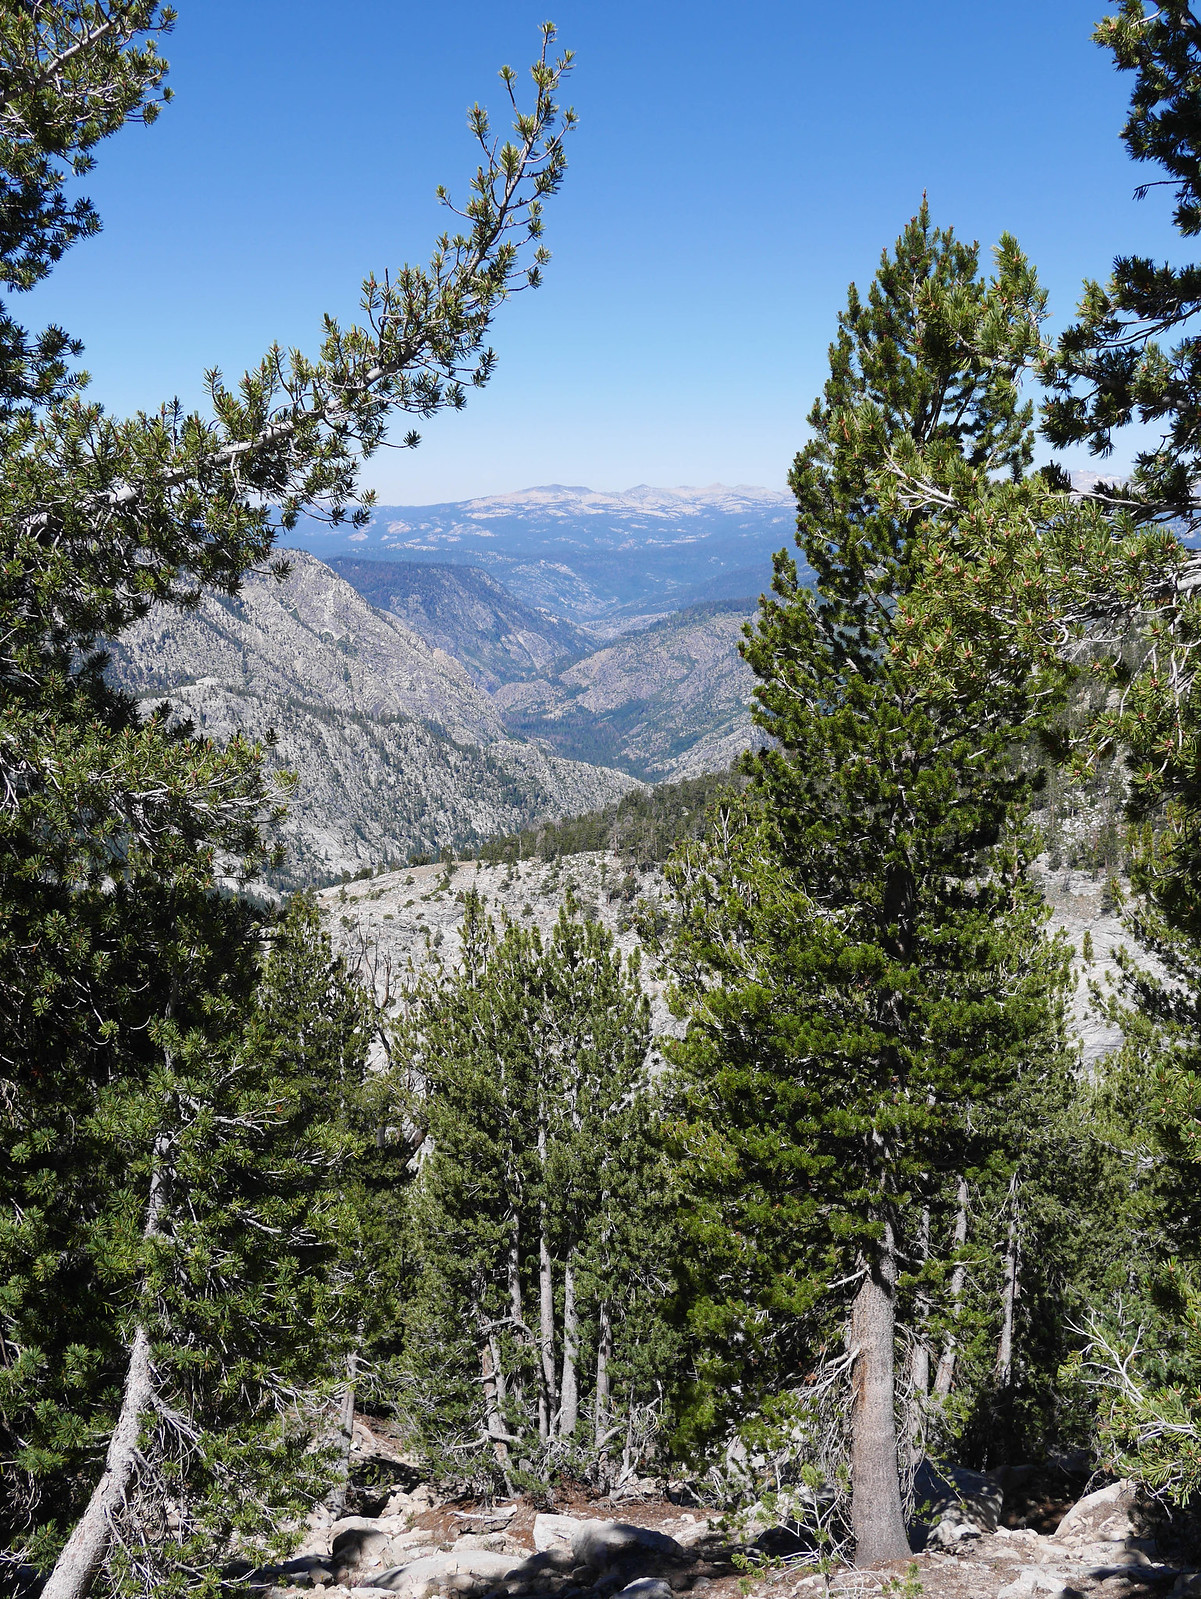 Looking northwest towards Fish Valley, which I hiked up on the way in.